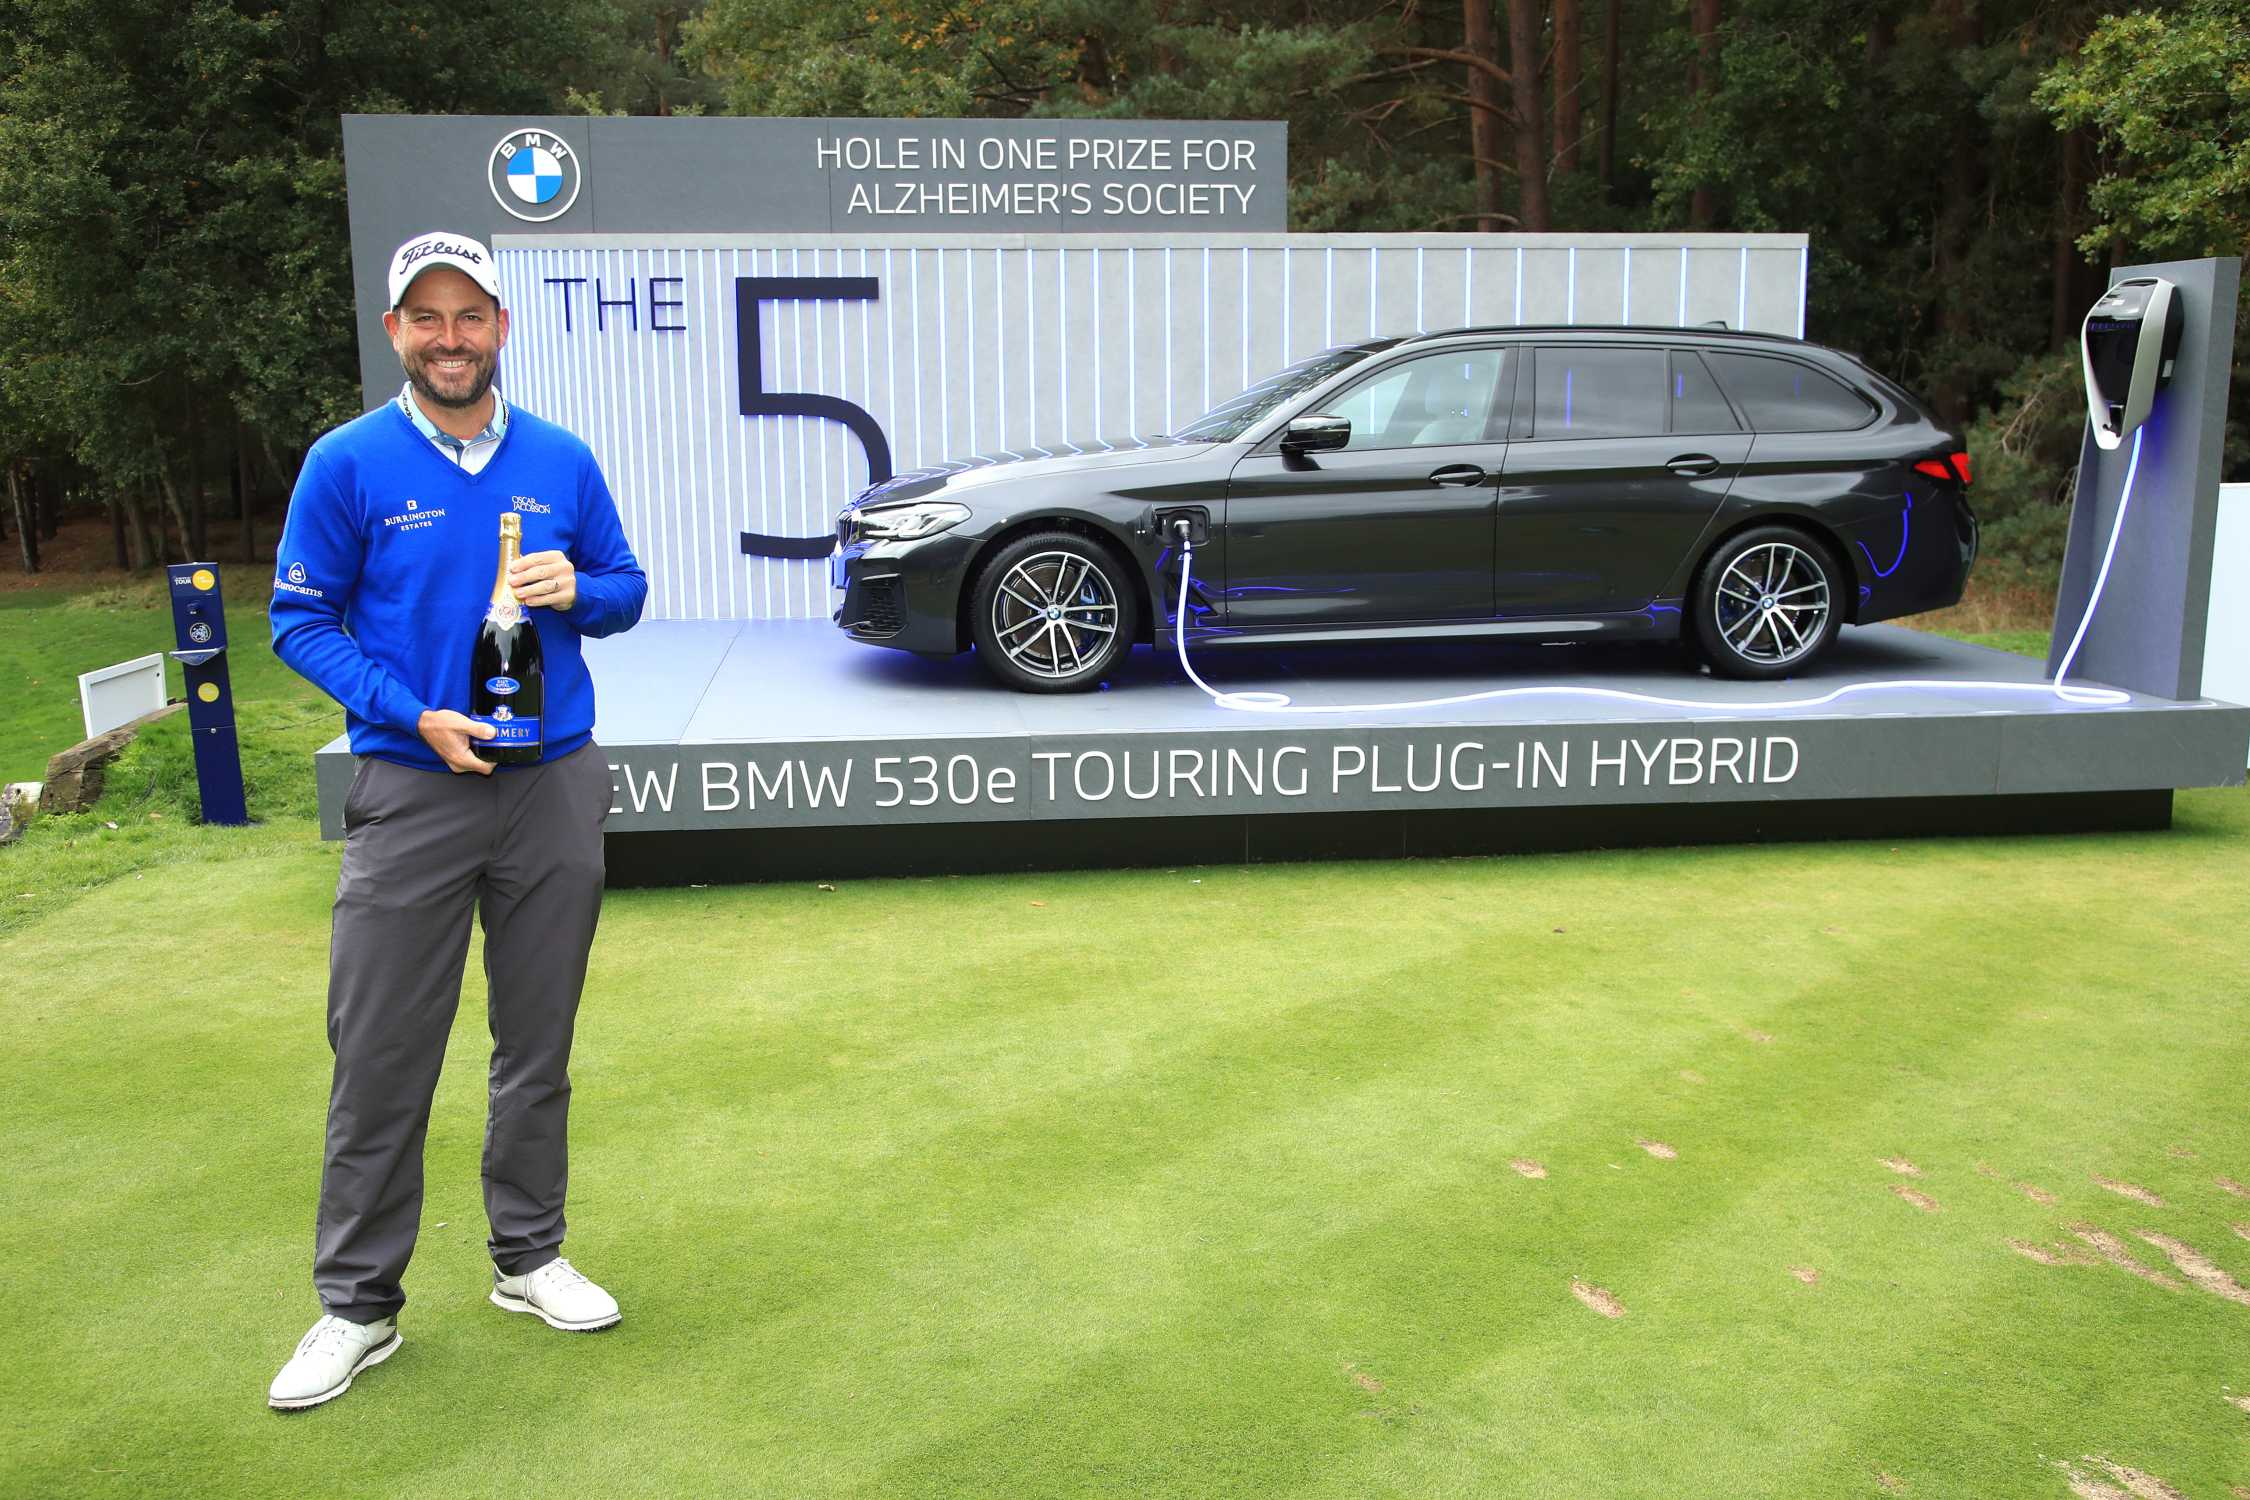 David Howell S Hole In One For Charity Bmw Donates 71 675 To The Alzheimer S Society